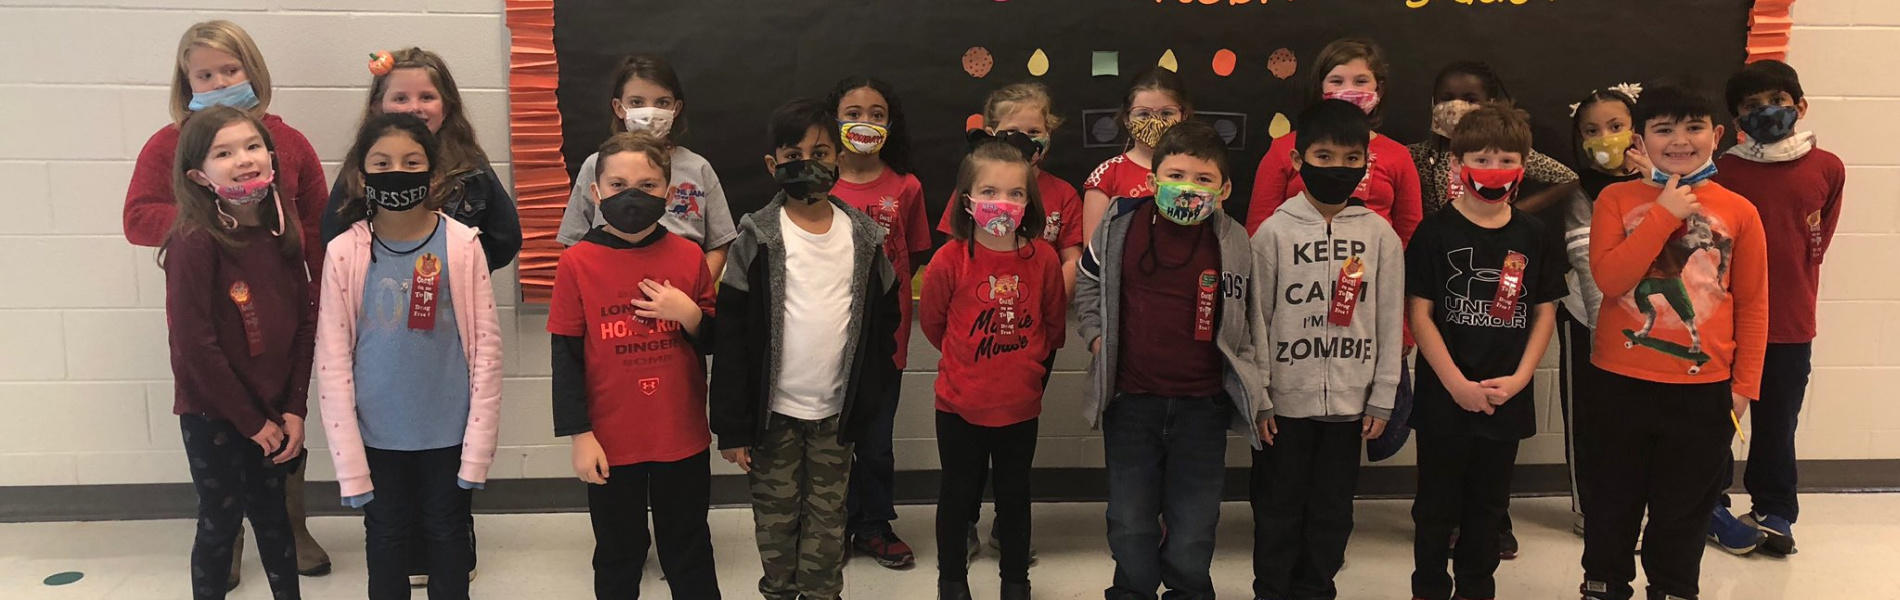 Group student pic with masks